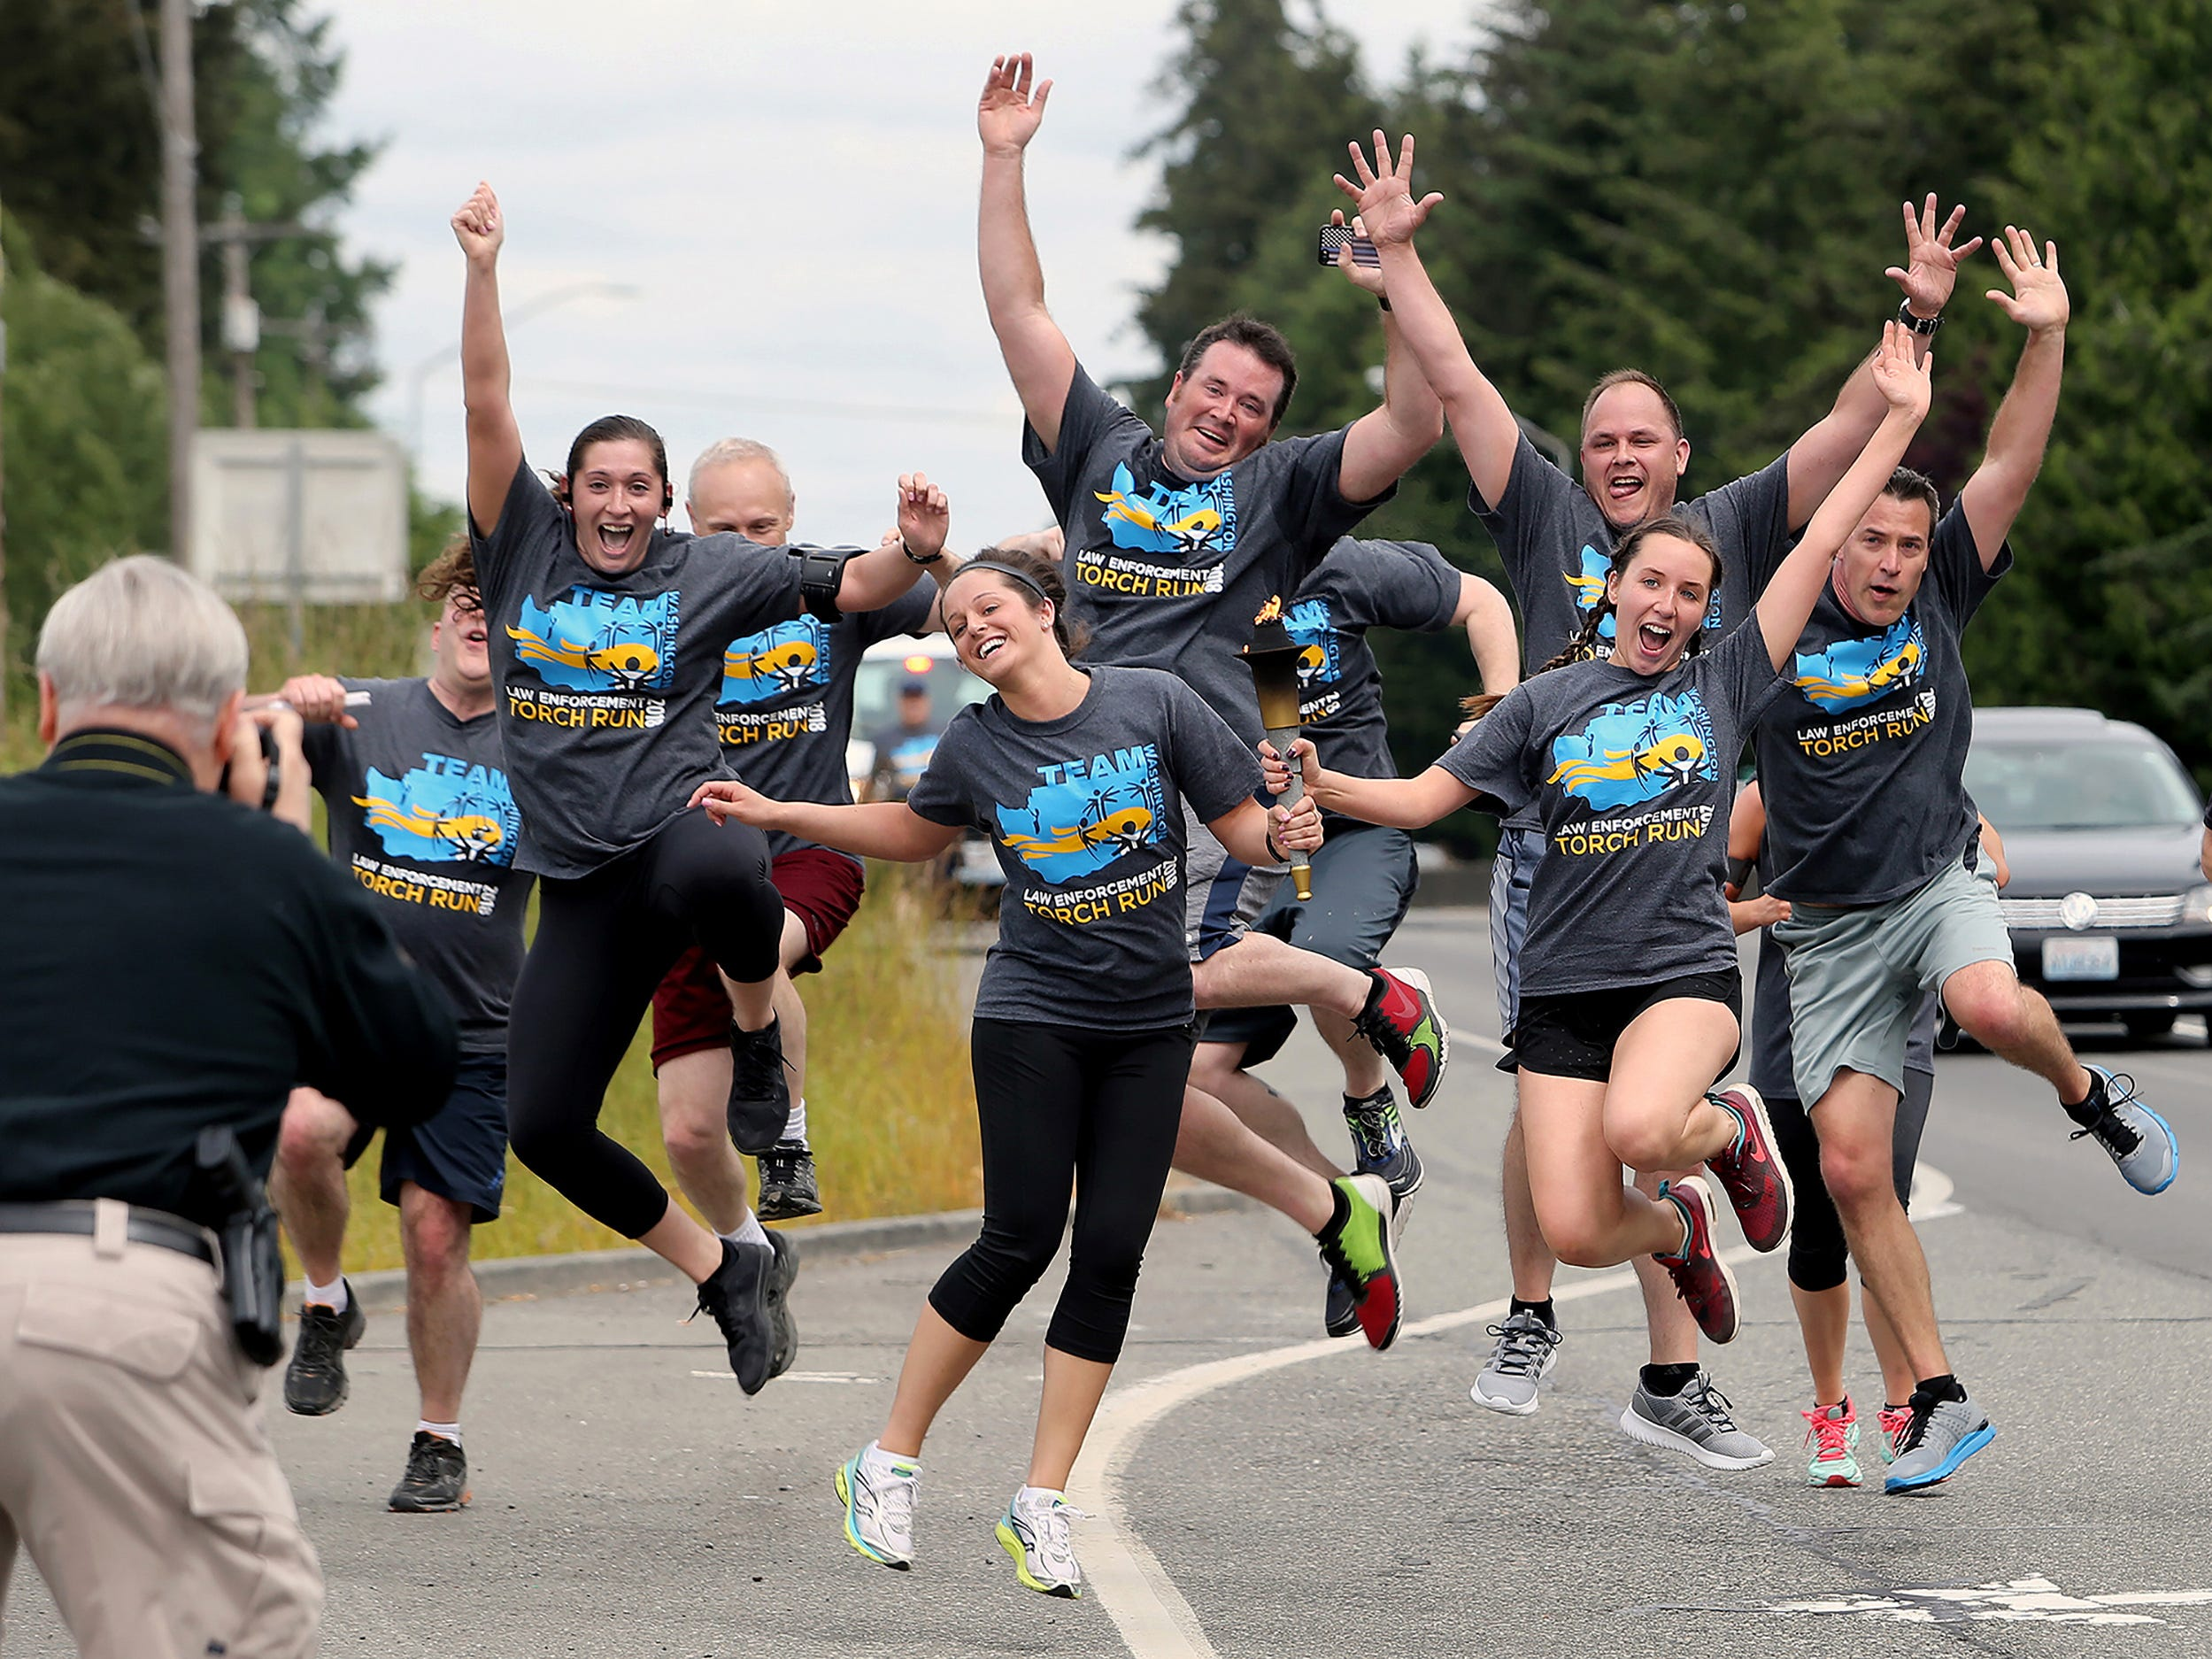 The Kitsap County Sheriffs Office Special Olympics torch running team does a ceremonial leap in front of Kitsap County Deputy Scott Wilson at the end of their running leg at Highway 303 and Fairgrounds Road on Thursday May 31, 2018. Holding the torch in the center left is corrections officer Erin Swallom, and corrections nurse Bailey Montgomery.